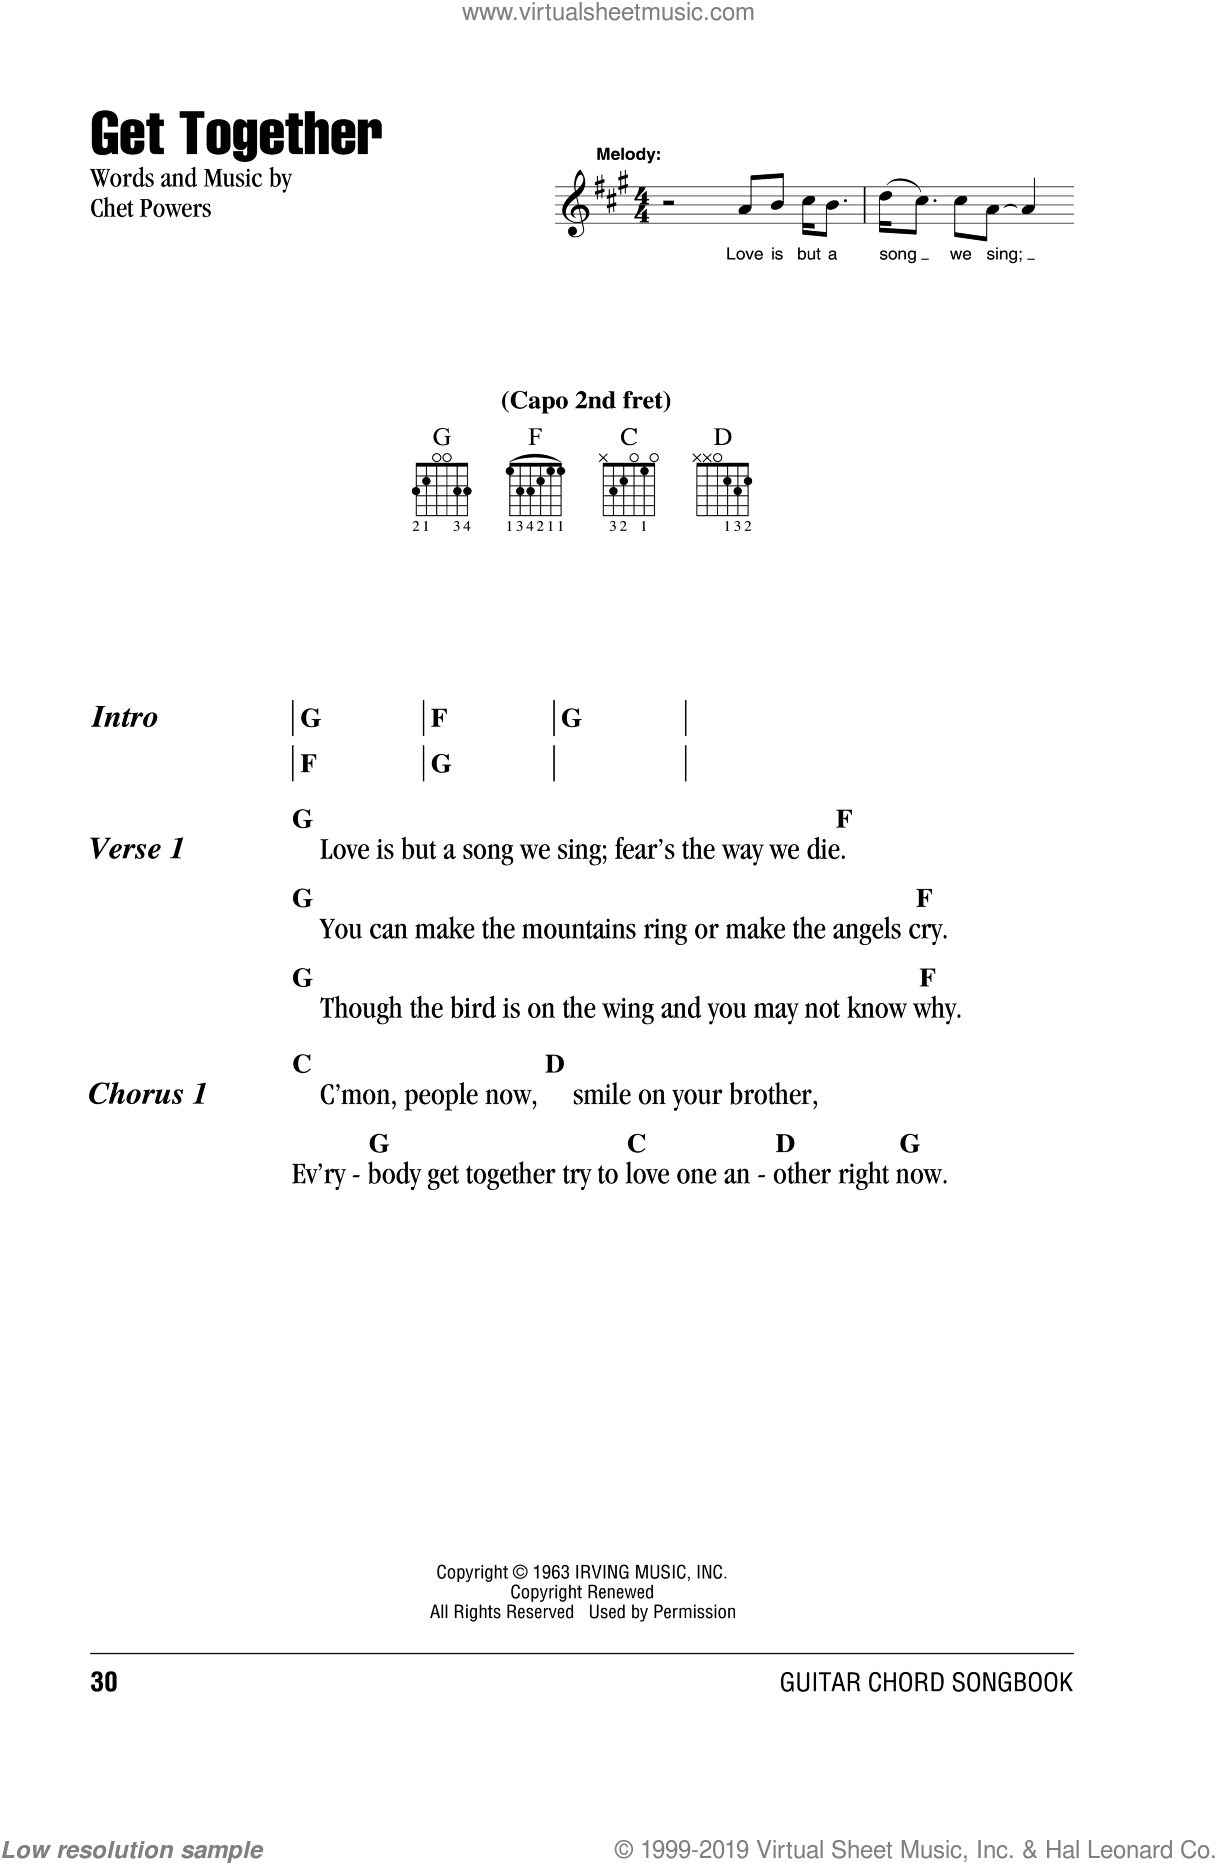 Get Together sheet music for guitar (chords) by Chet Powers